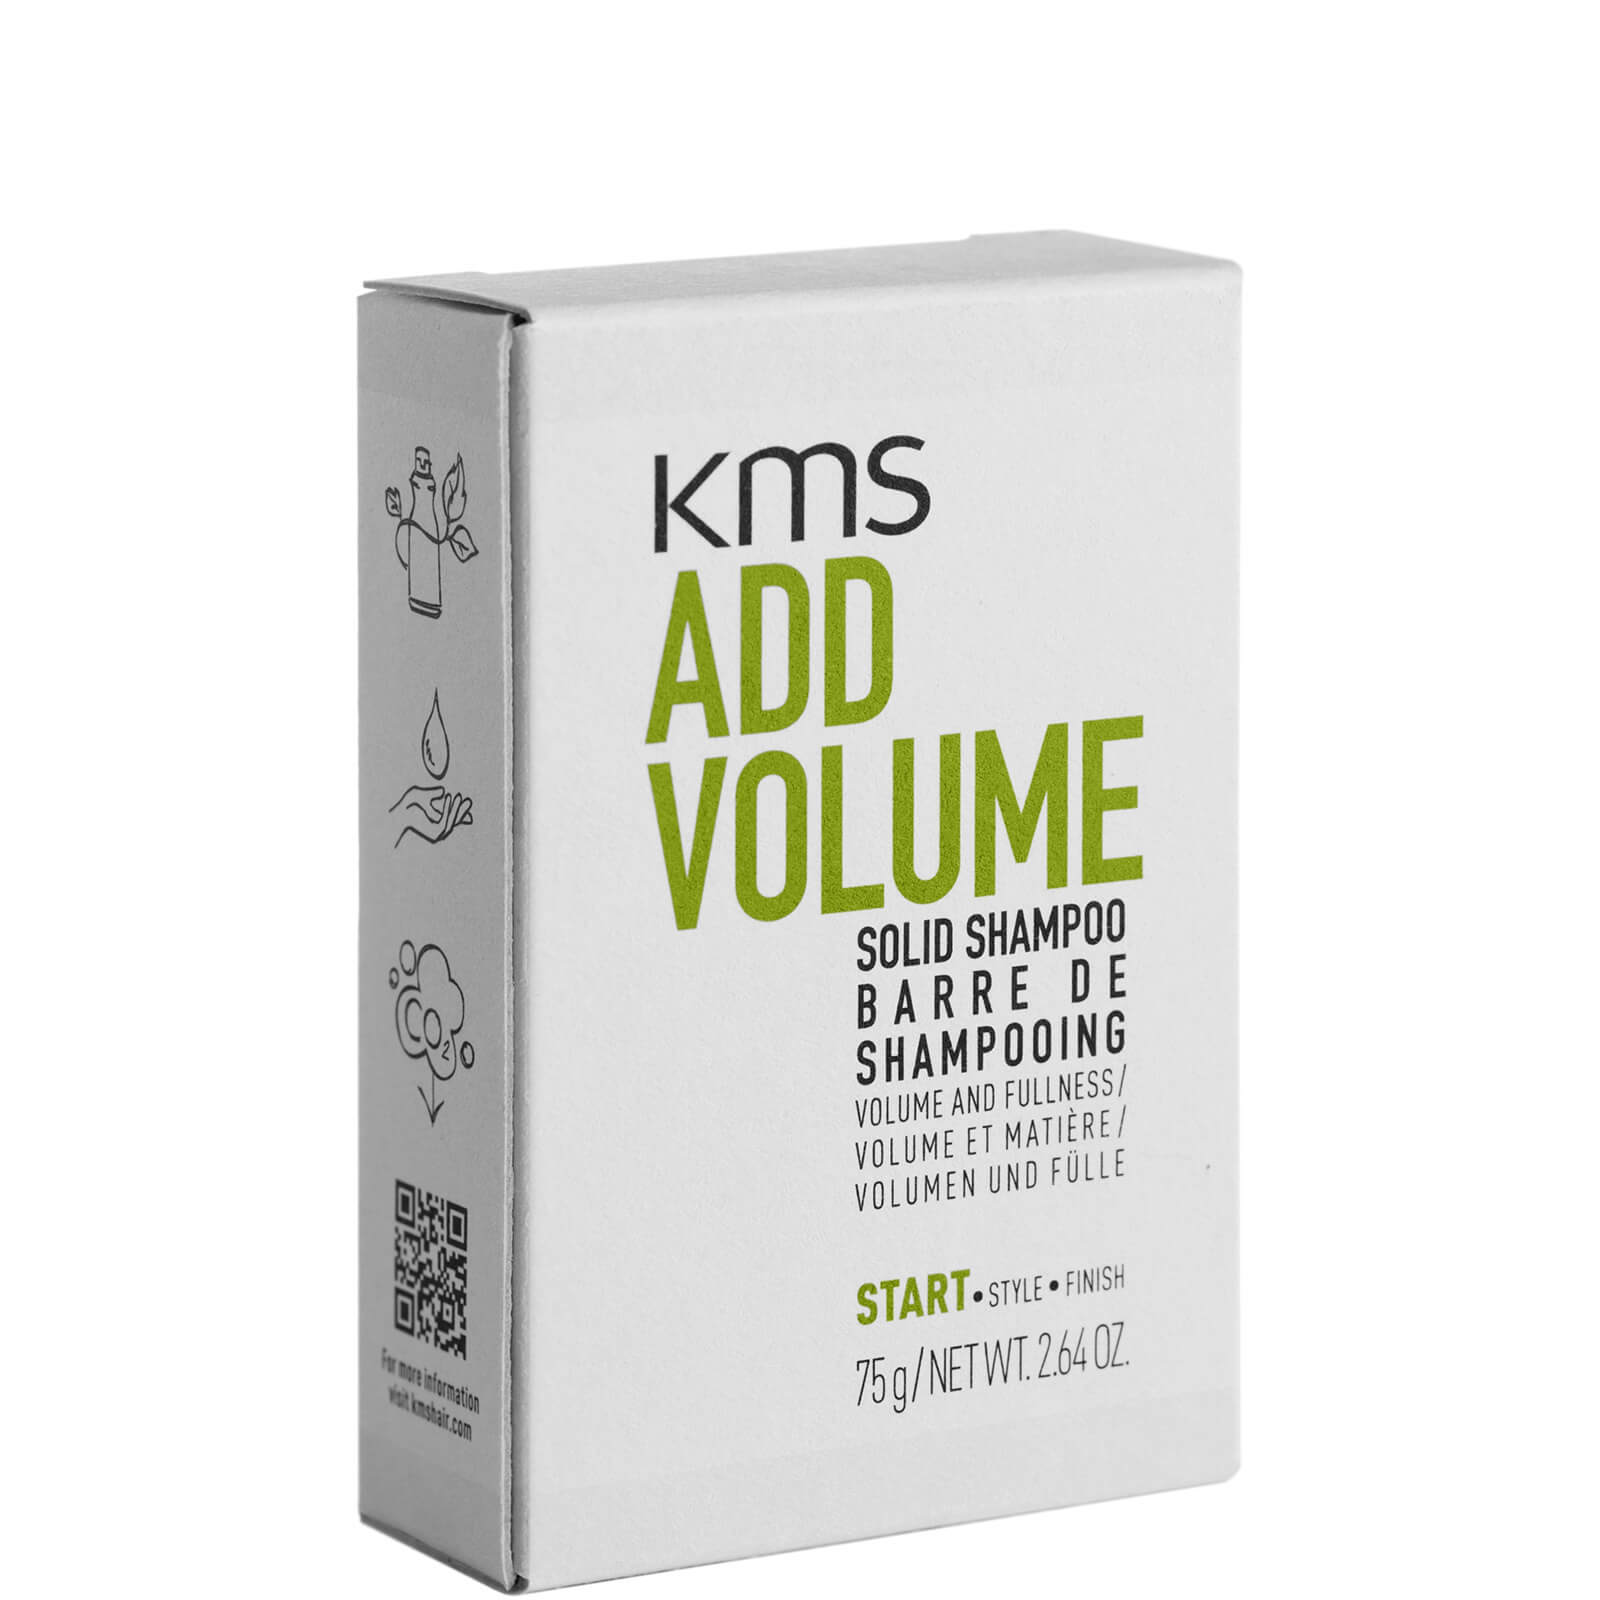 Kms ADD VOLUME SOLID SHAMPOO 75G